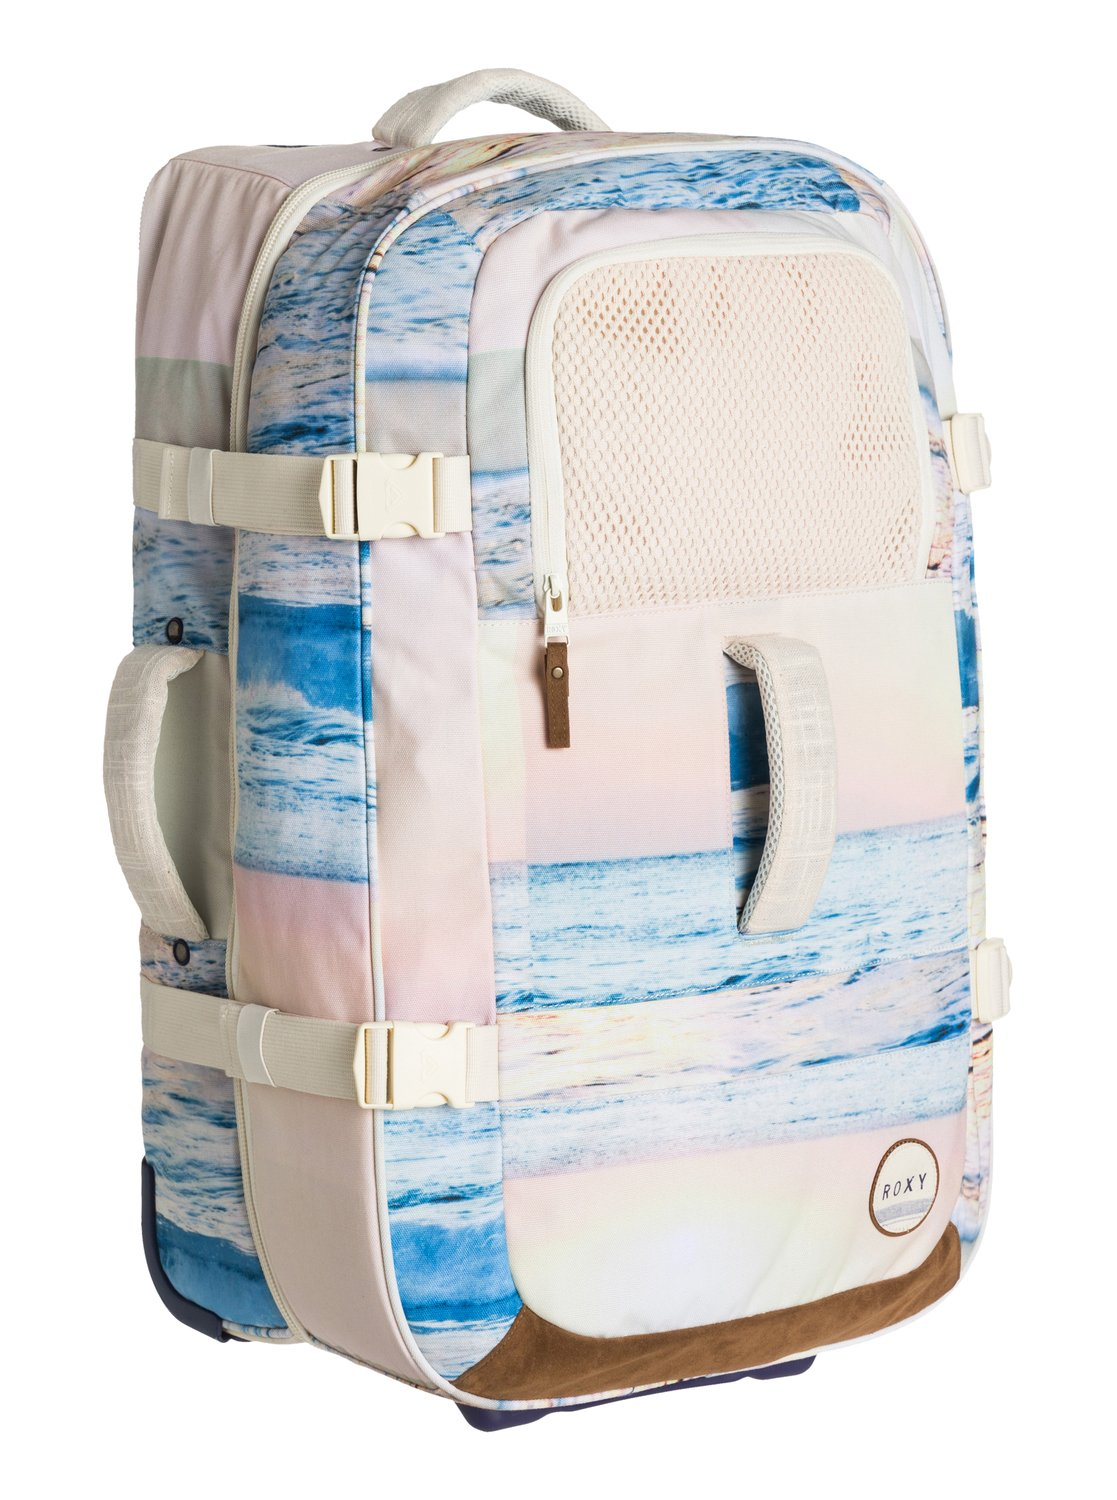 Roxy Suitcases And Travel Bags